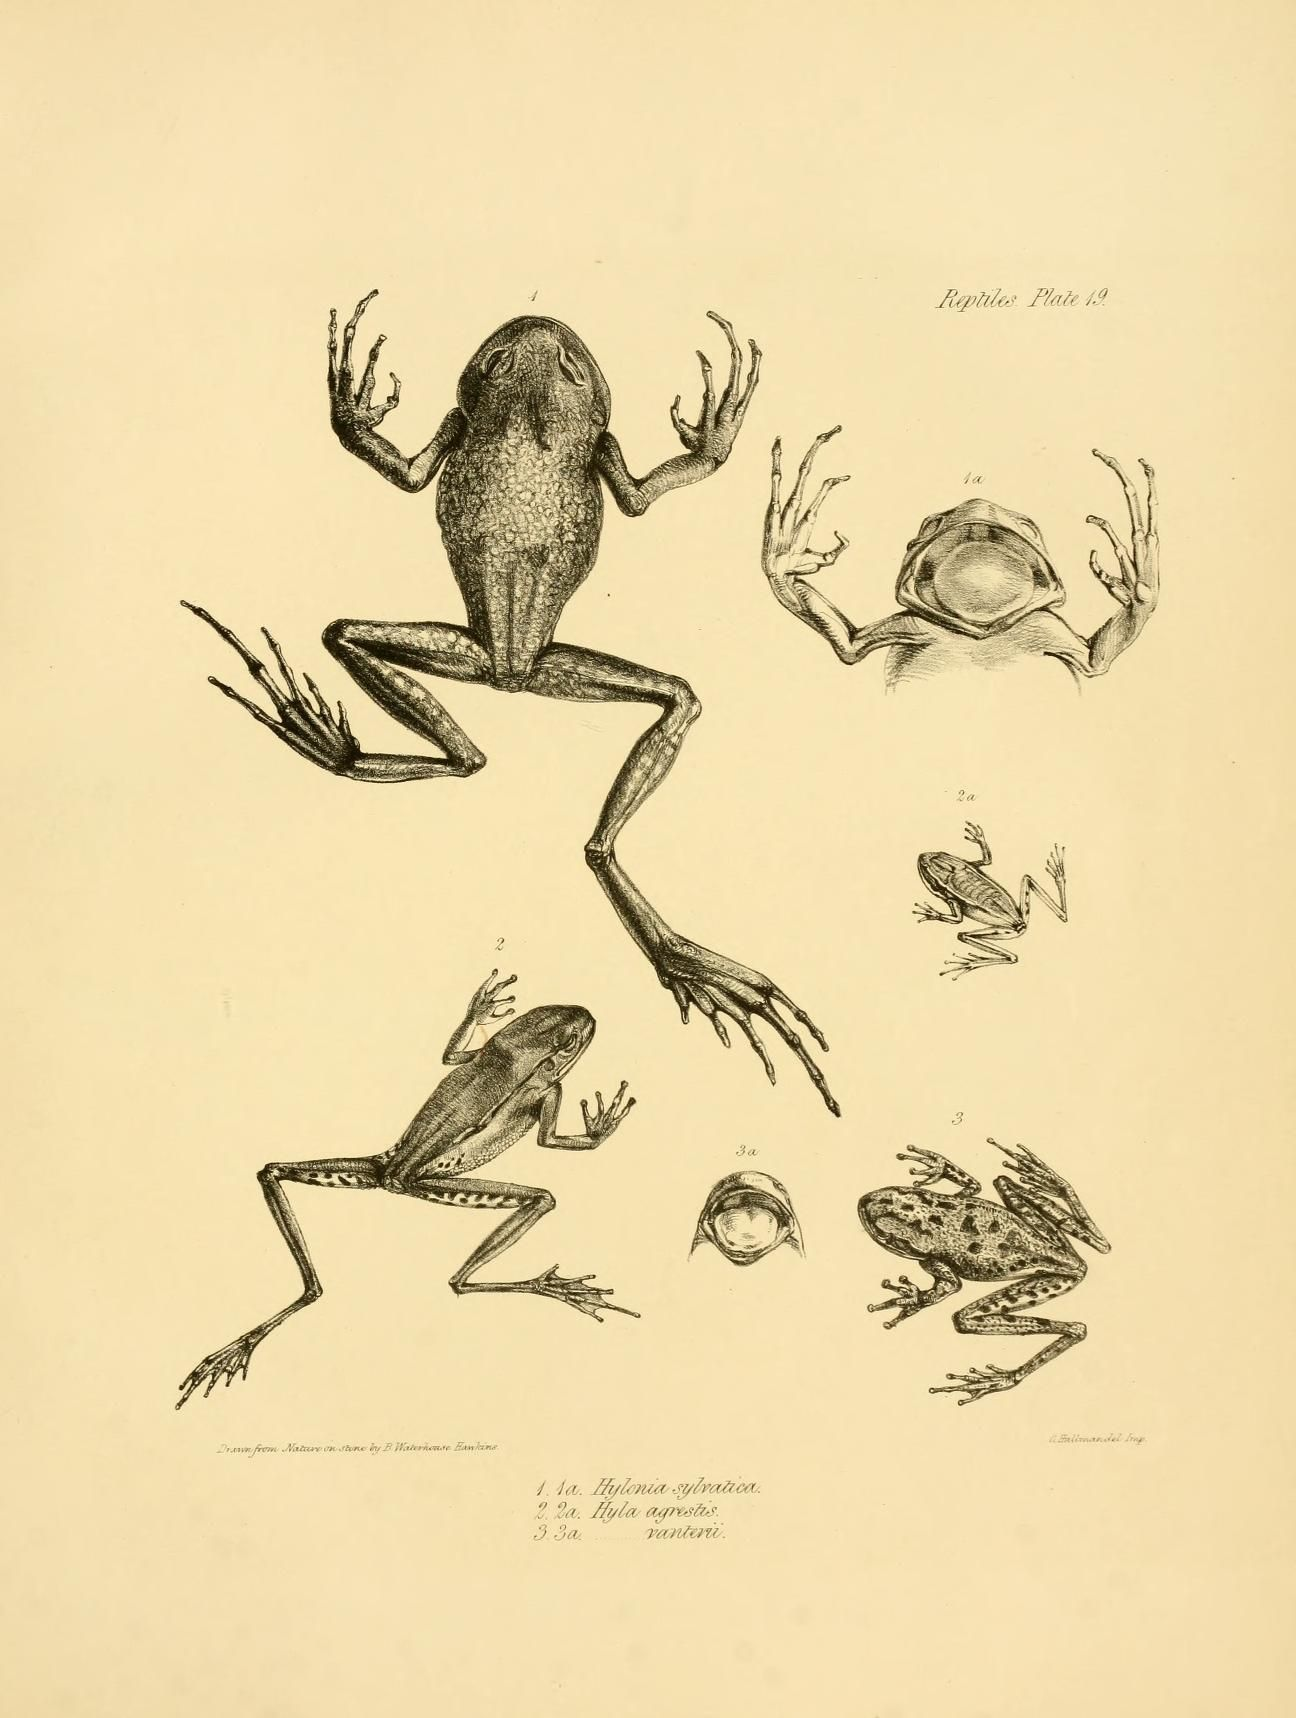 Hylonia And Hyla The Zoology Of The Voyage Of H M S Beagle